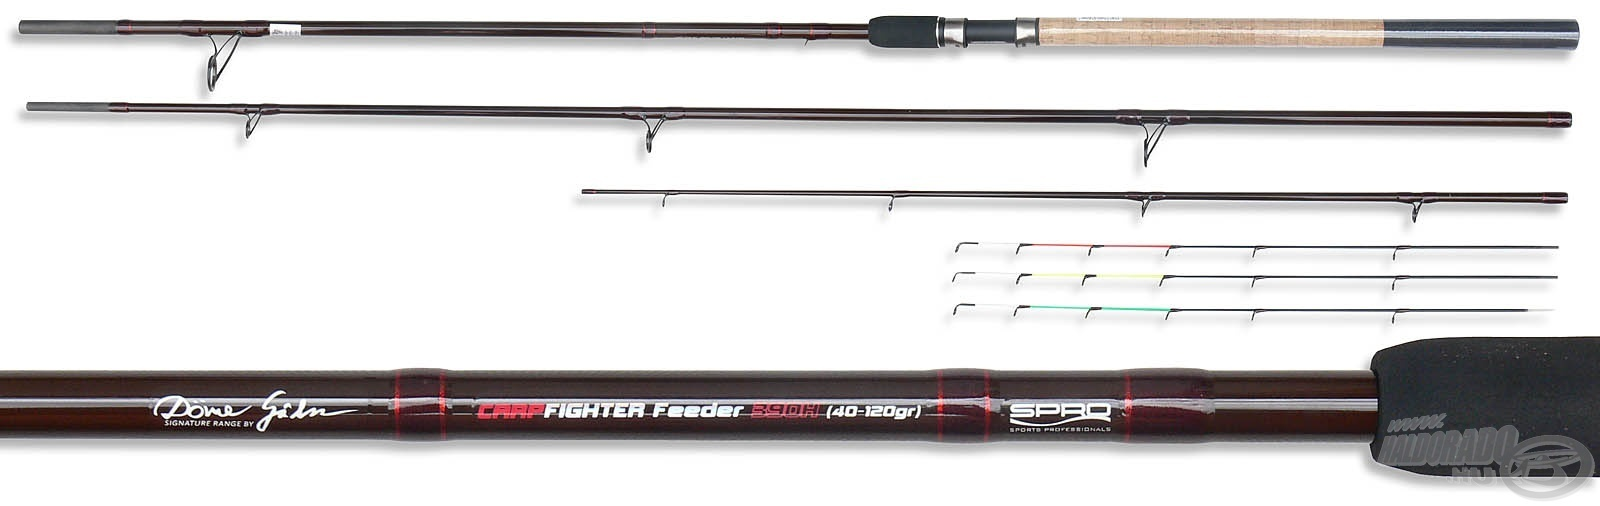 SPRO, Team, Feeder, Carp, Fighter, 330M, -, by, D�me, G�bor, 14990Ft